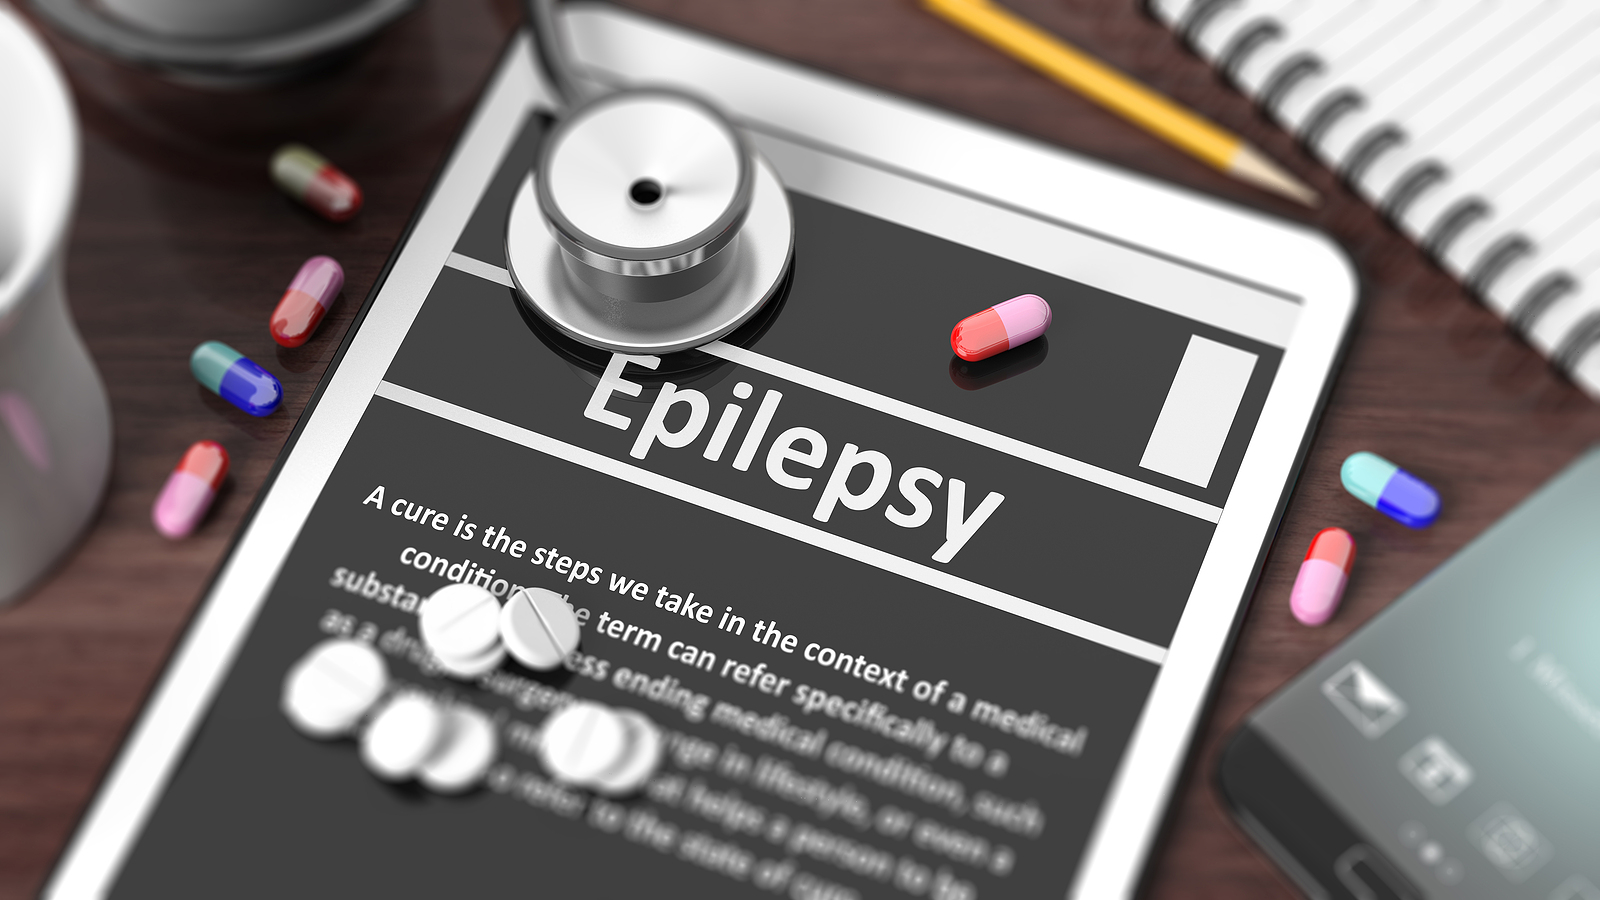 bigstock Tablet with Epilepsy on scre 110156807